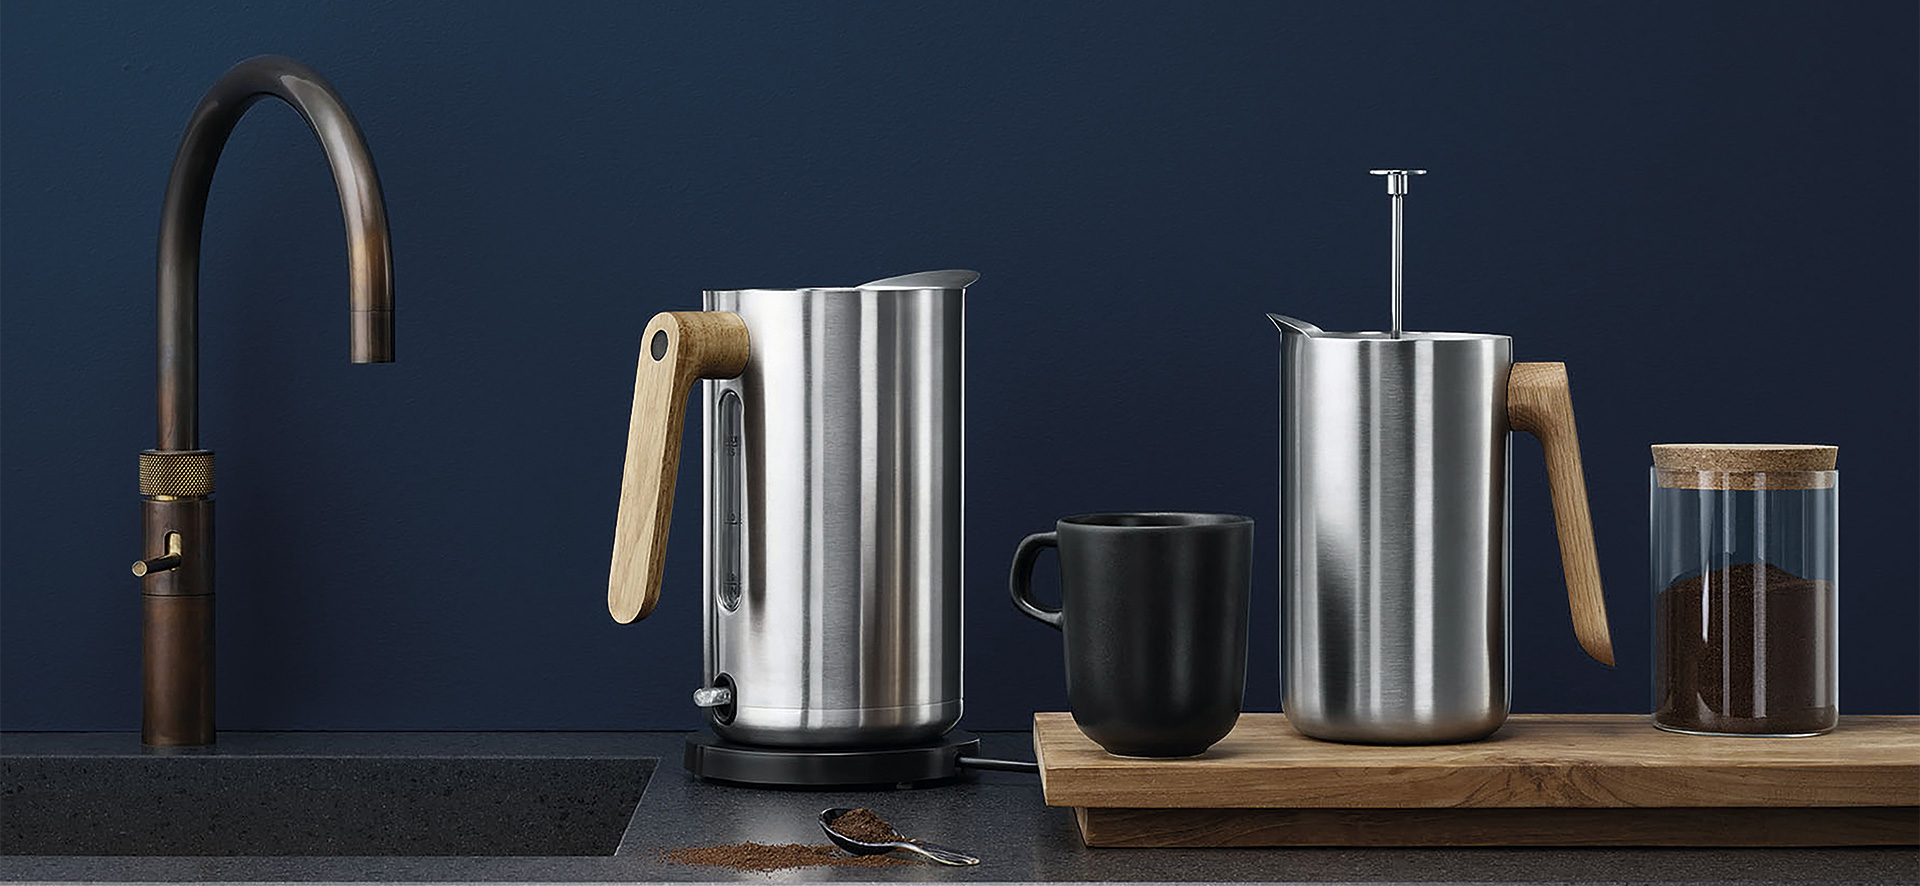 EVA SOLO Nordic kitchen cafetière #3